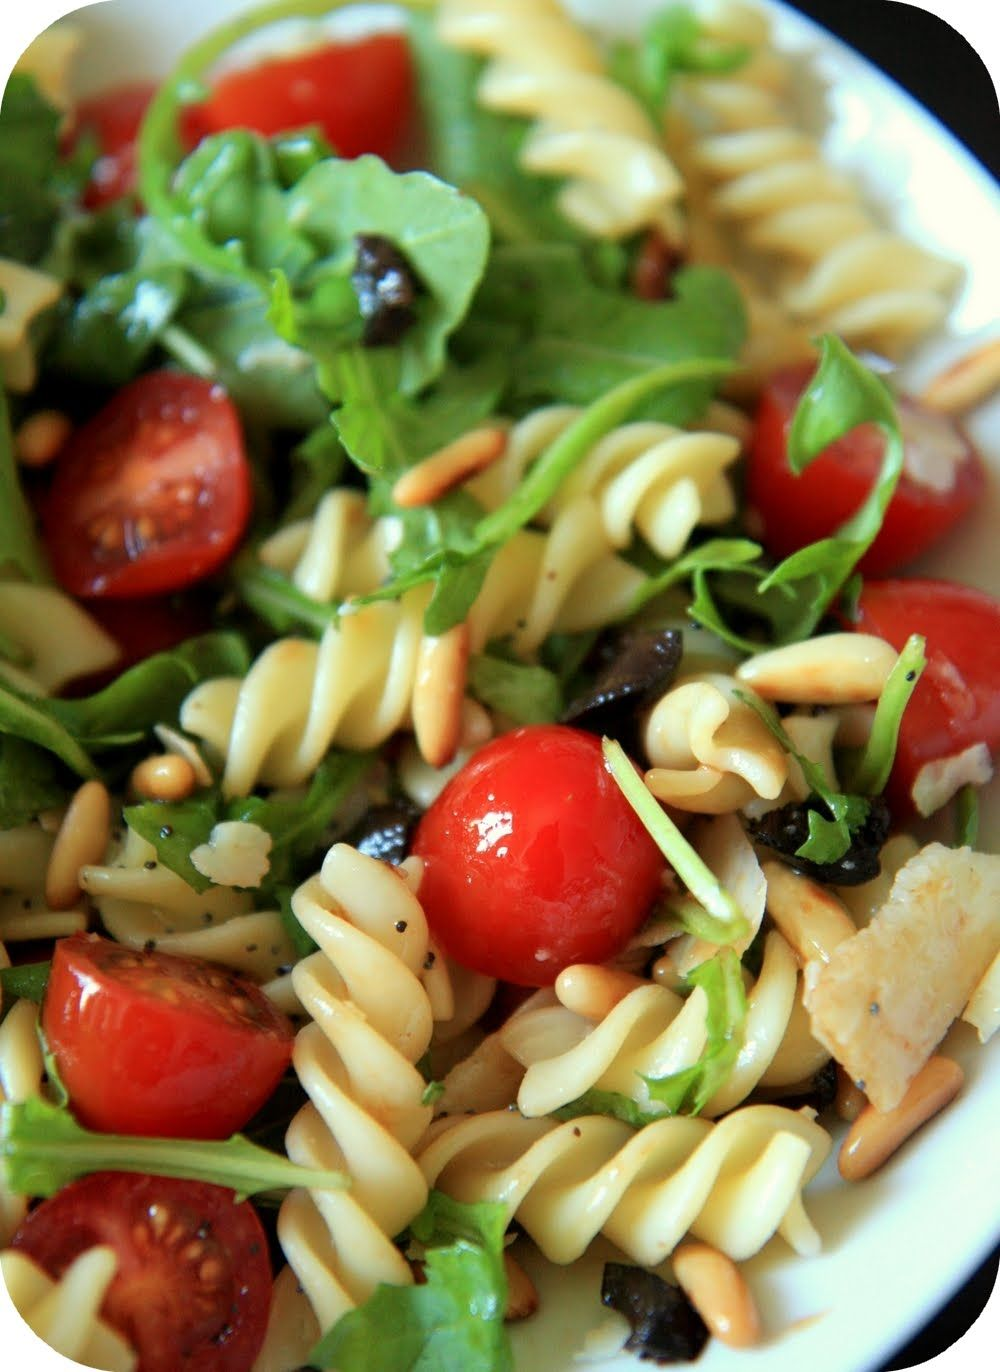 Salades Composee Pour Barbecue : salades, composee, barbecue, Salade, L'Italienne;, Recette, Quatre, Heures, Bricoleur, Recettes, Cuisine,, Barbecue